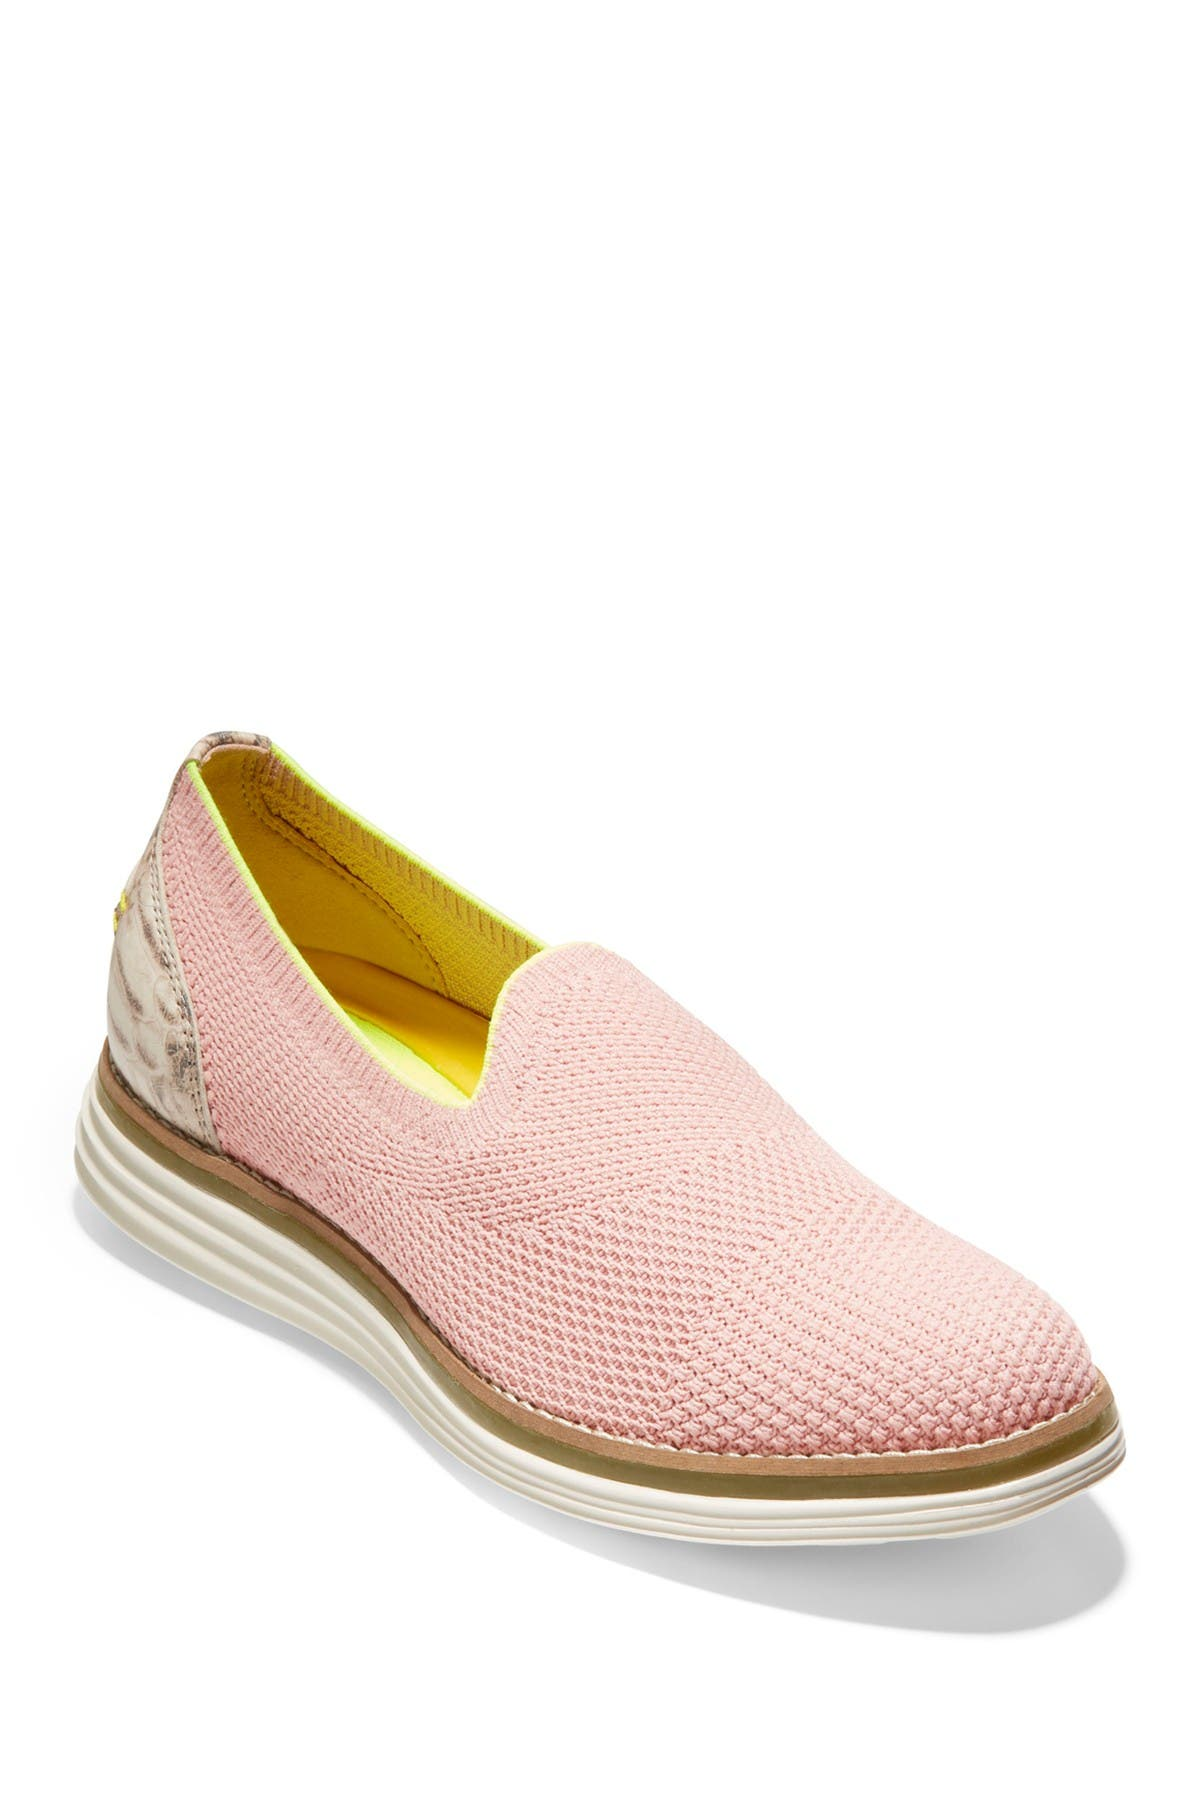 Cole Haan Loafers OG CLOUDFEEL MERIDIAN LOAFER